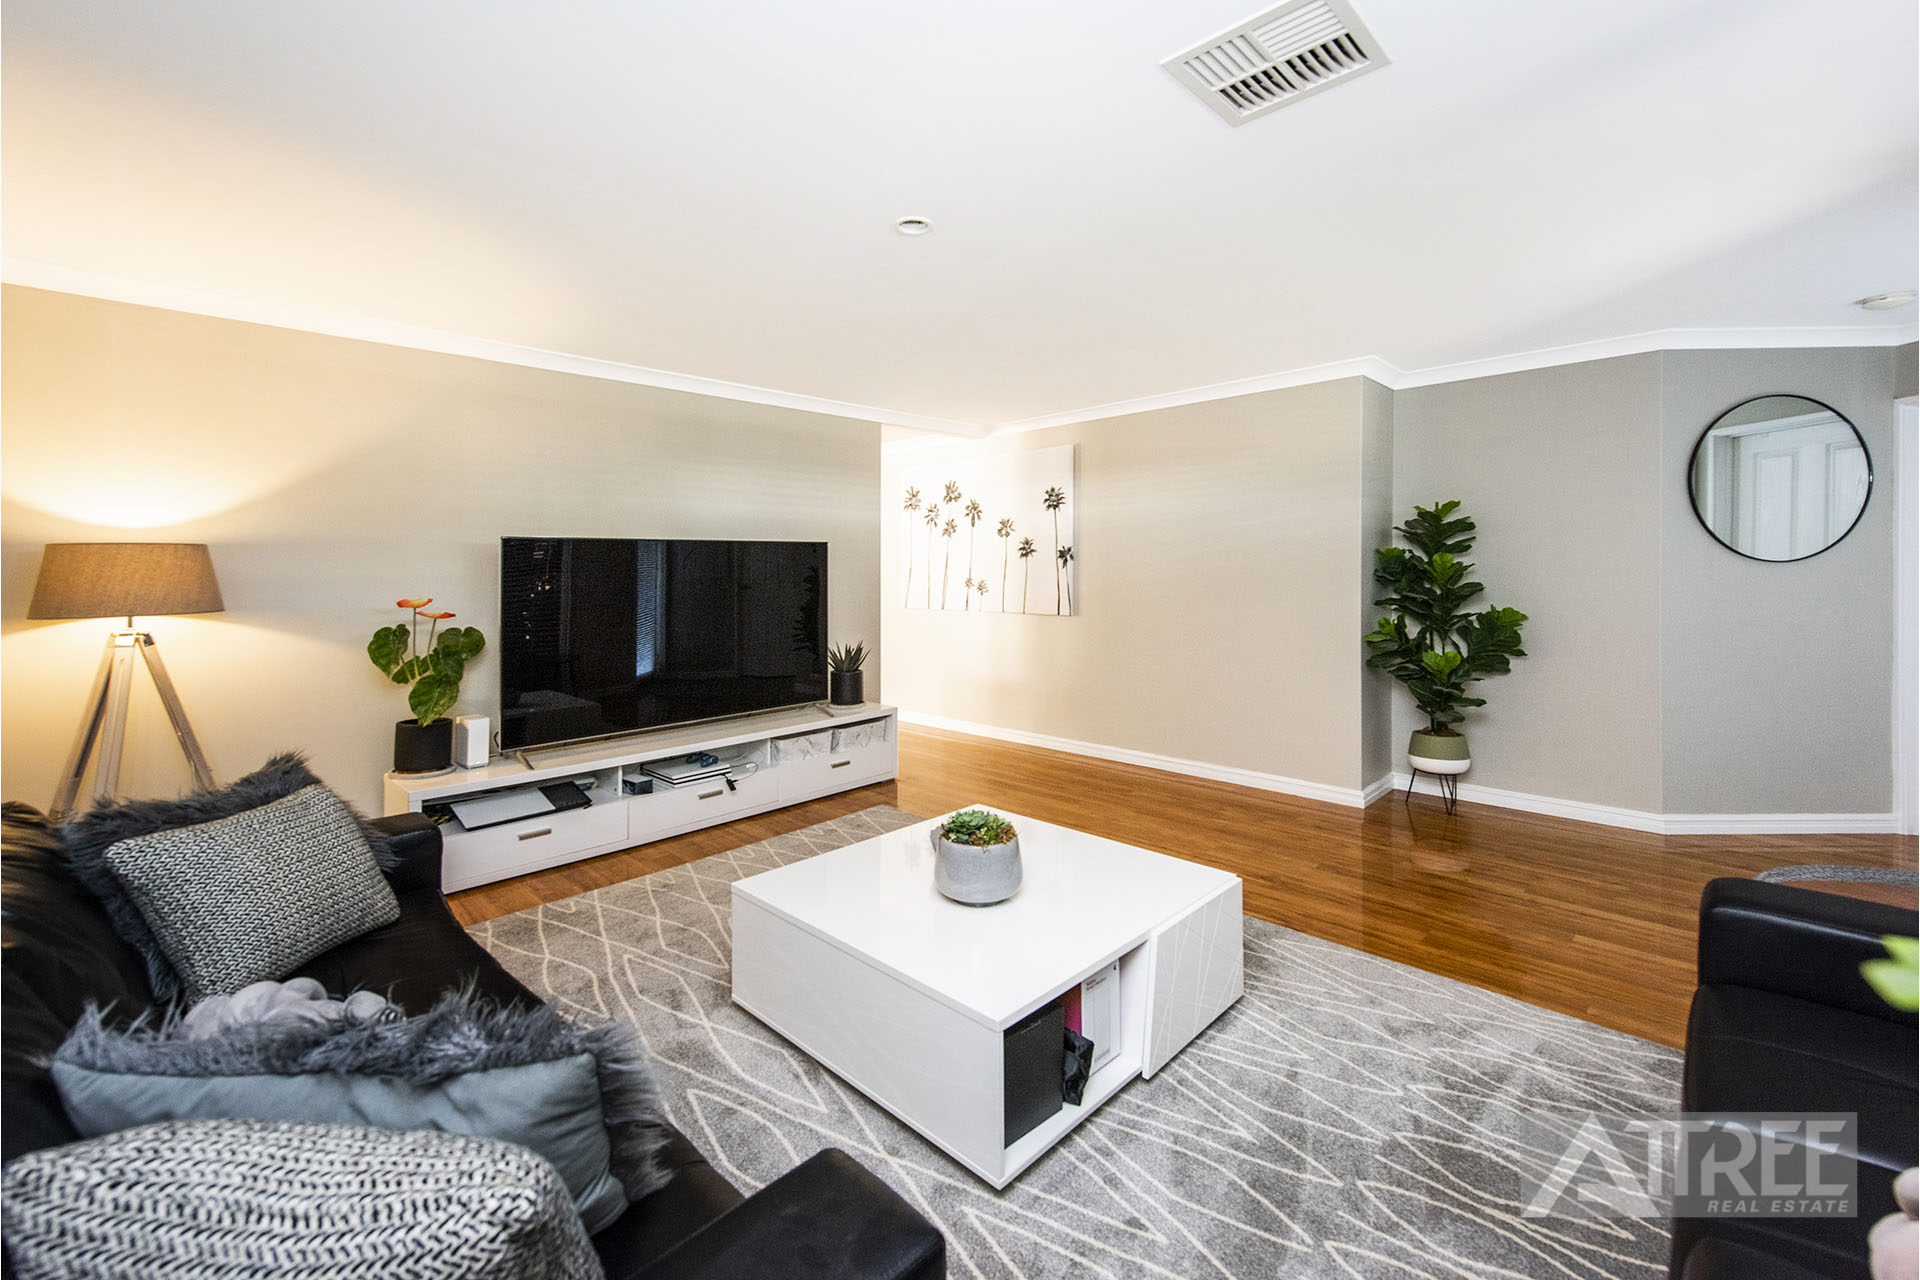 Property for sale in CANNING VALE, 117 Birnam Road : Attree Real Estate